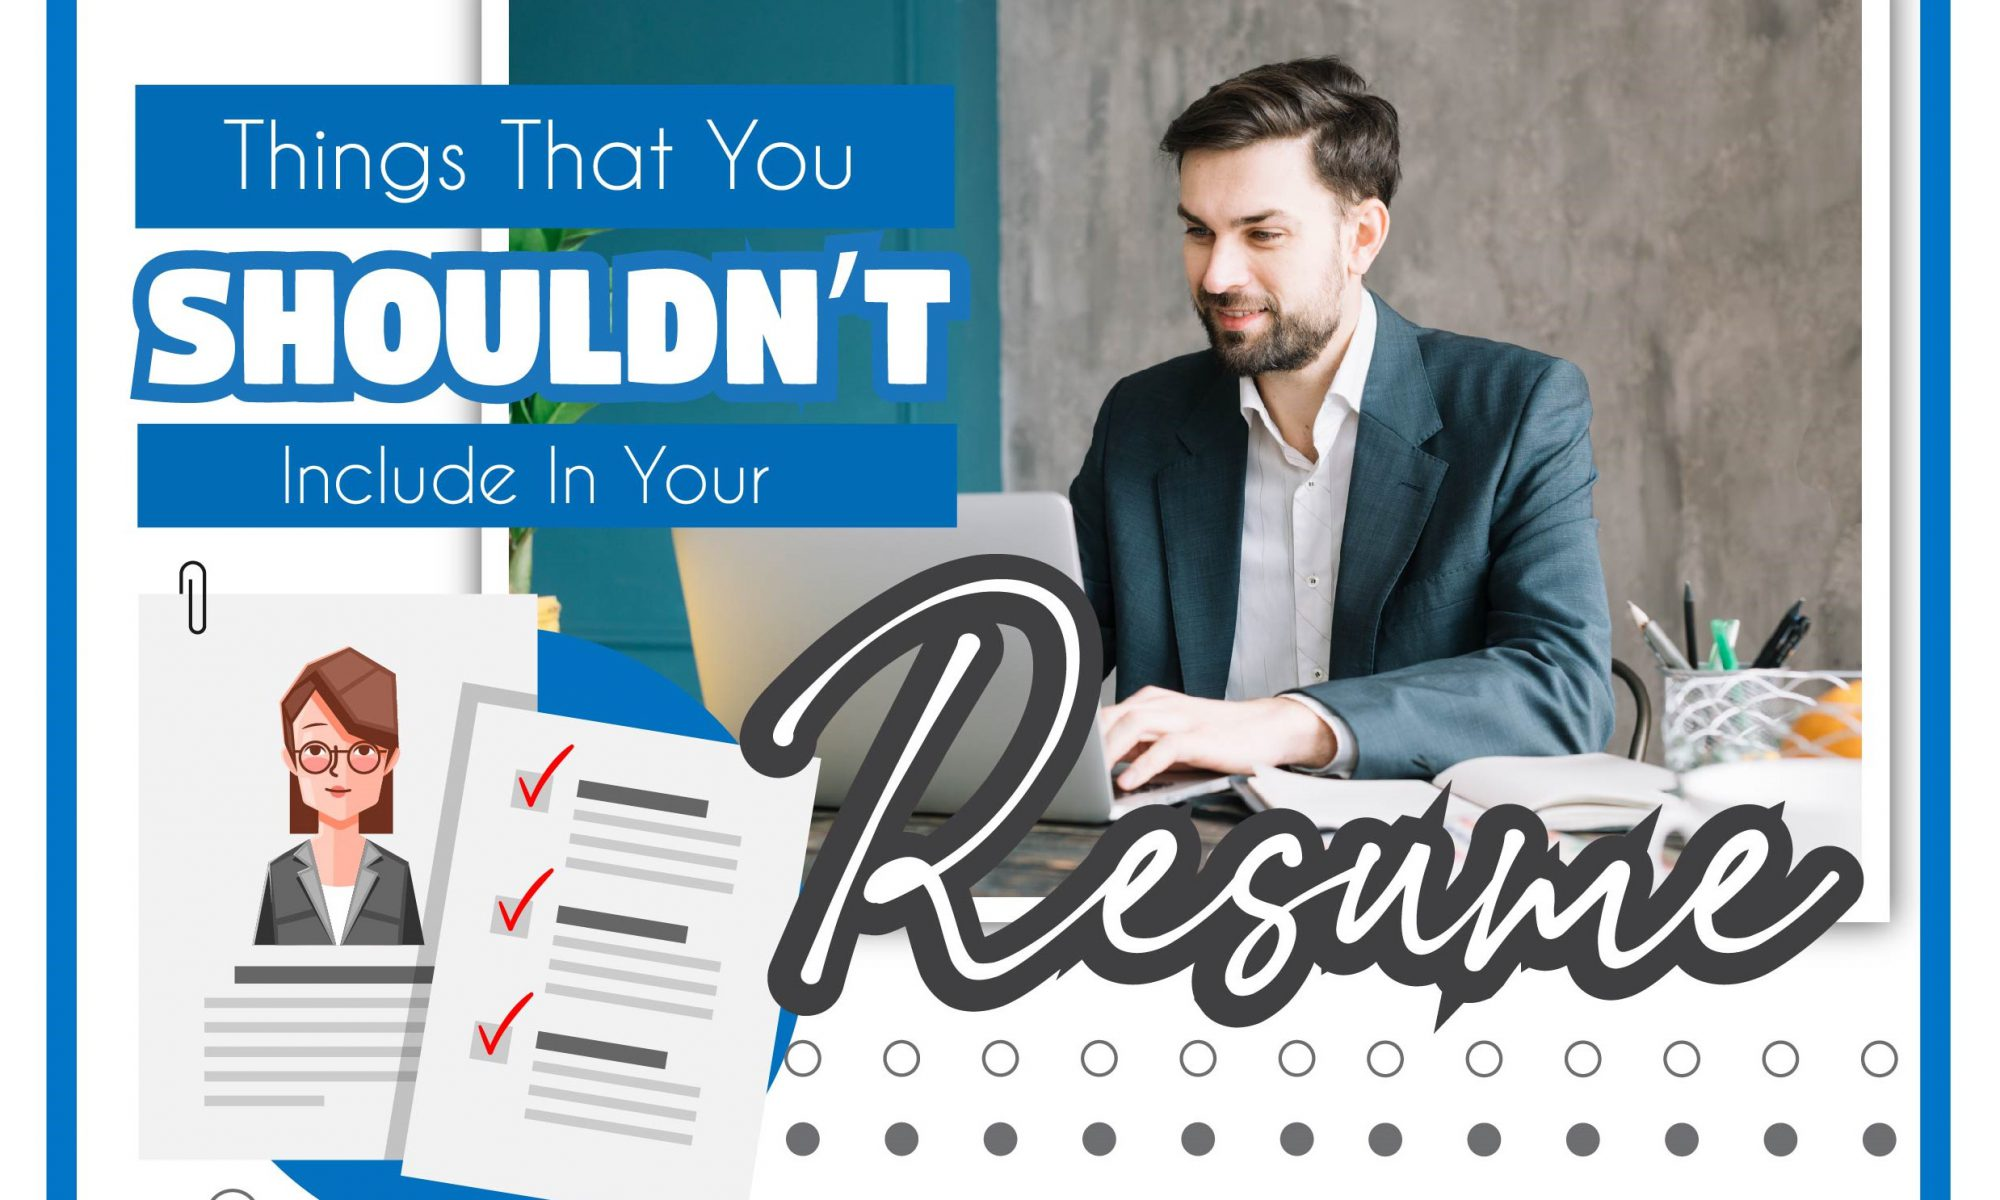 Things That You Shouldn't Include In Your Resume